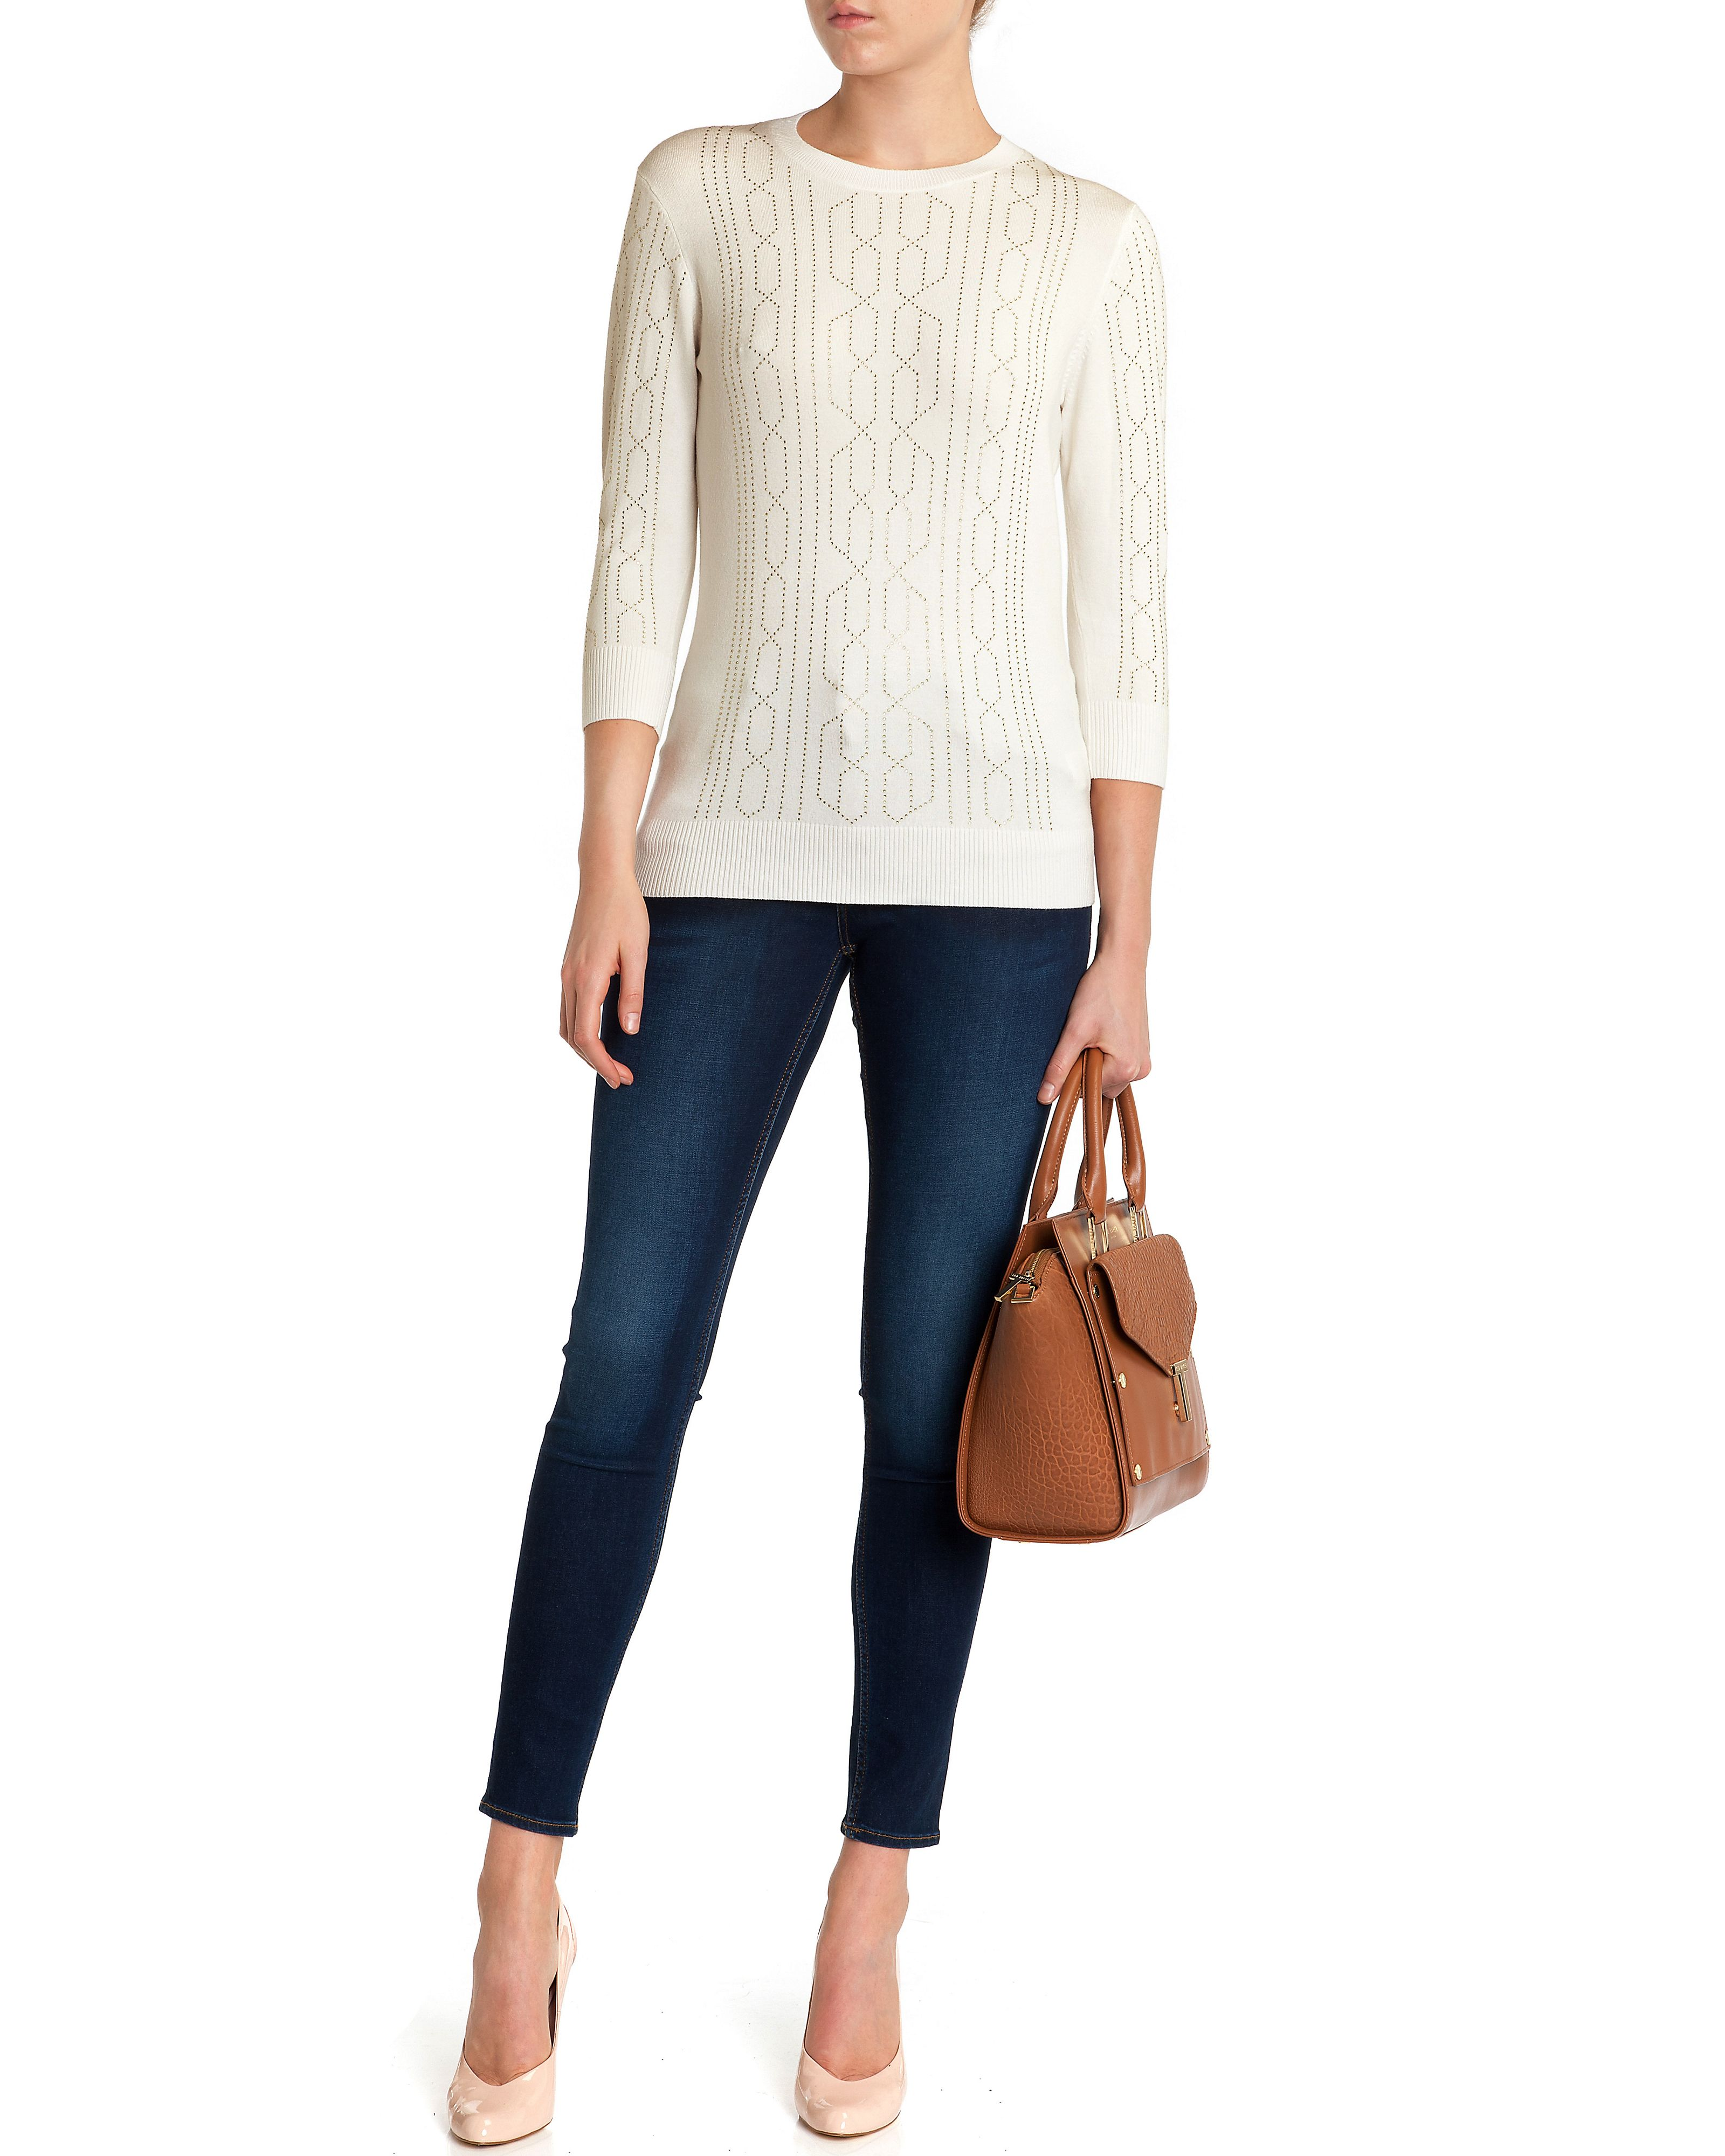 Nalea studded knit sweater